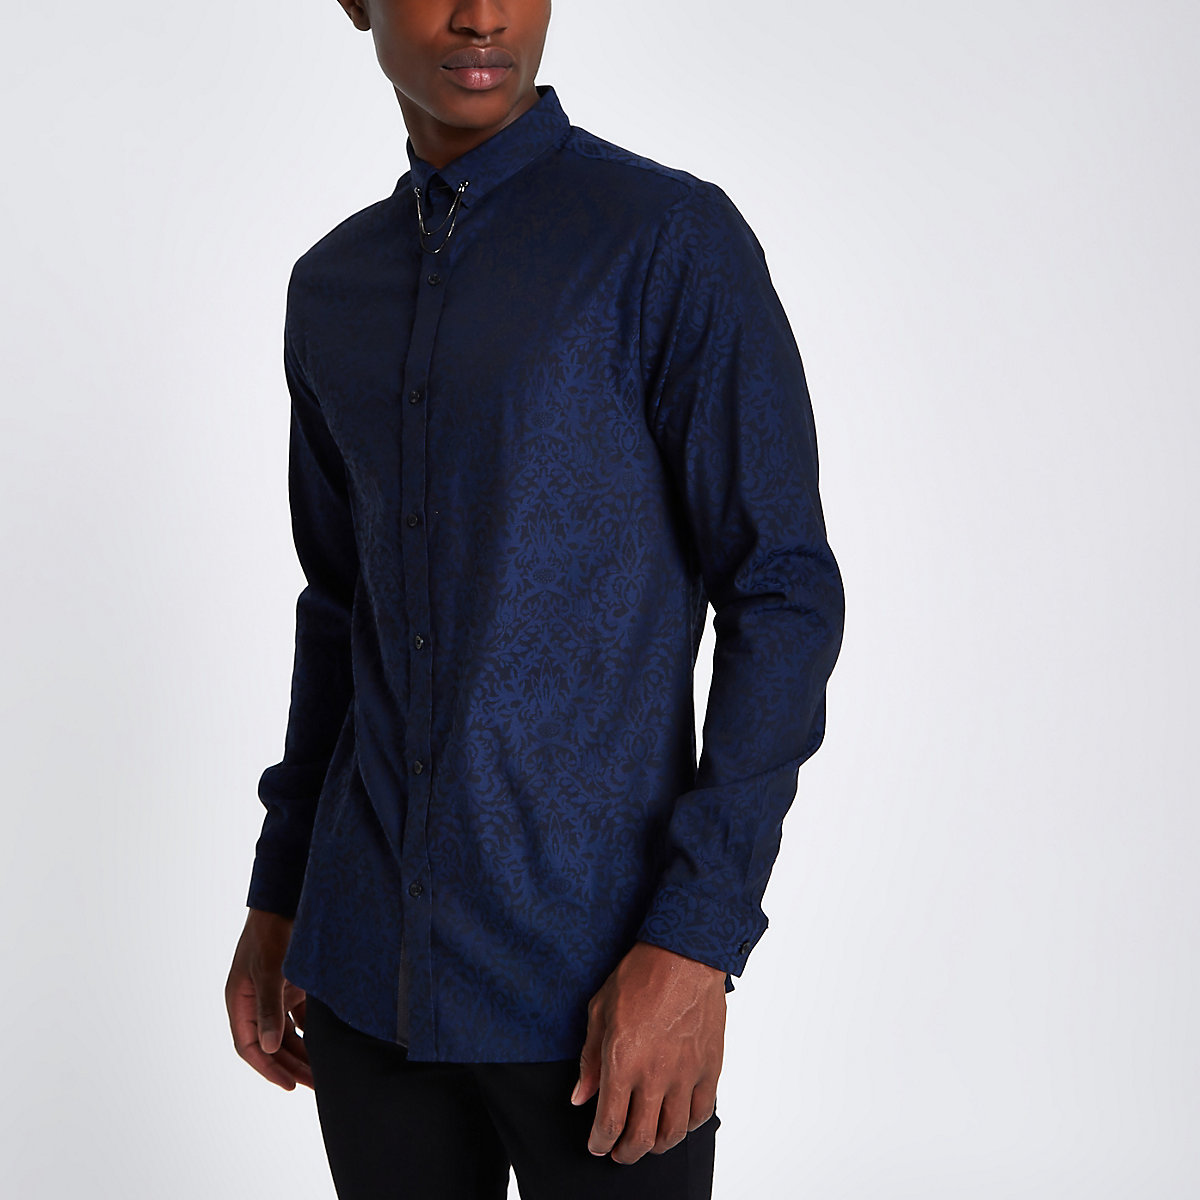 Navy jacquard printed slim fit shirt